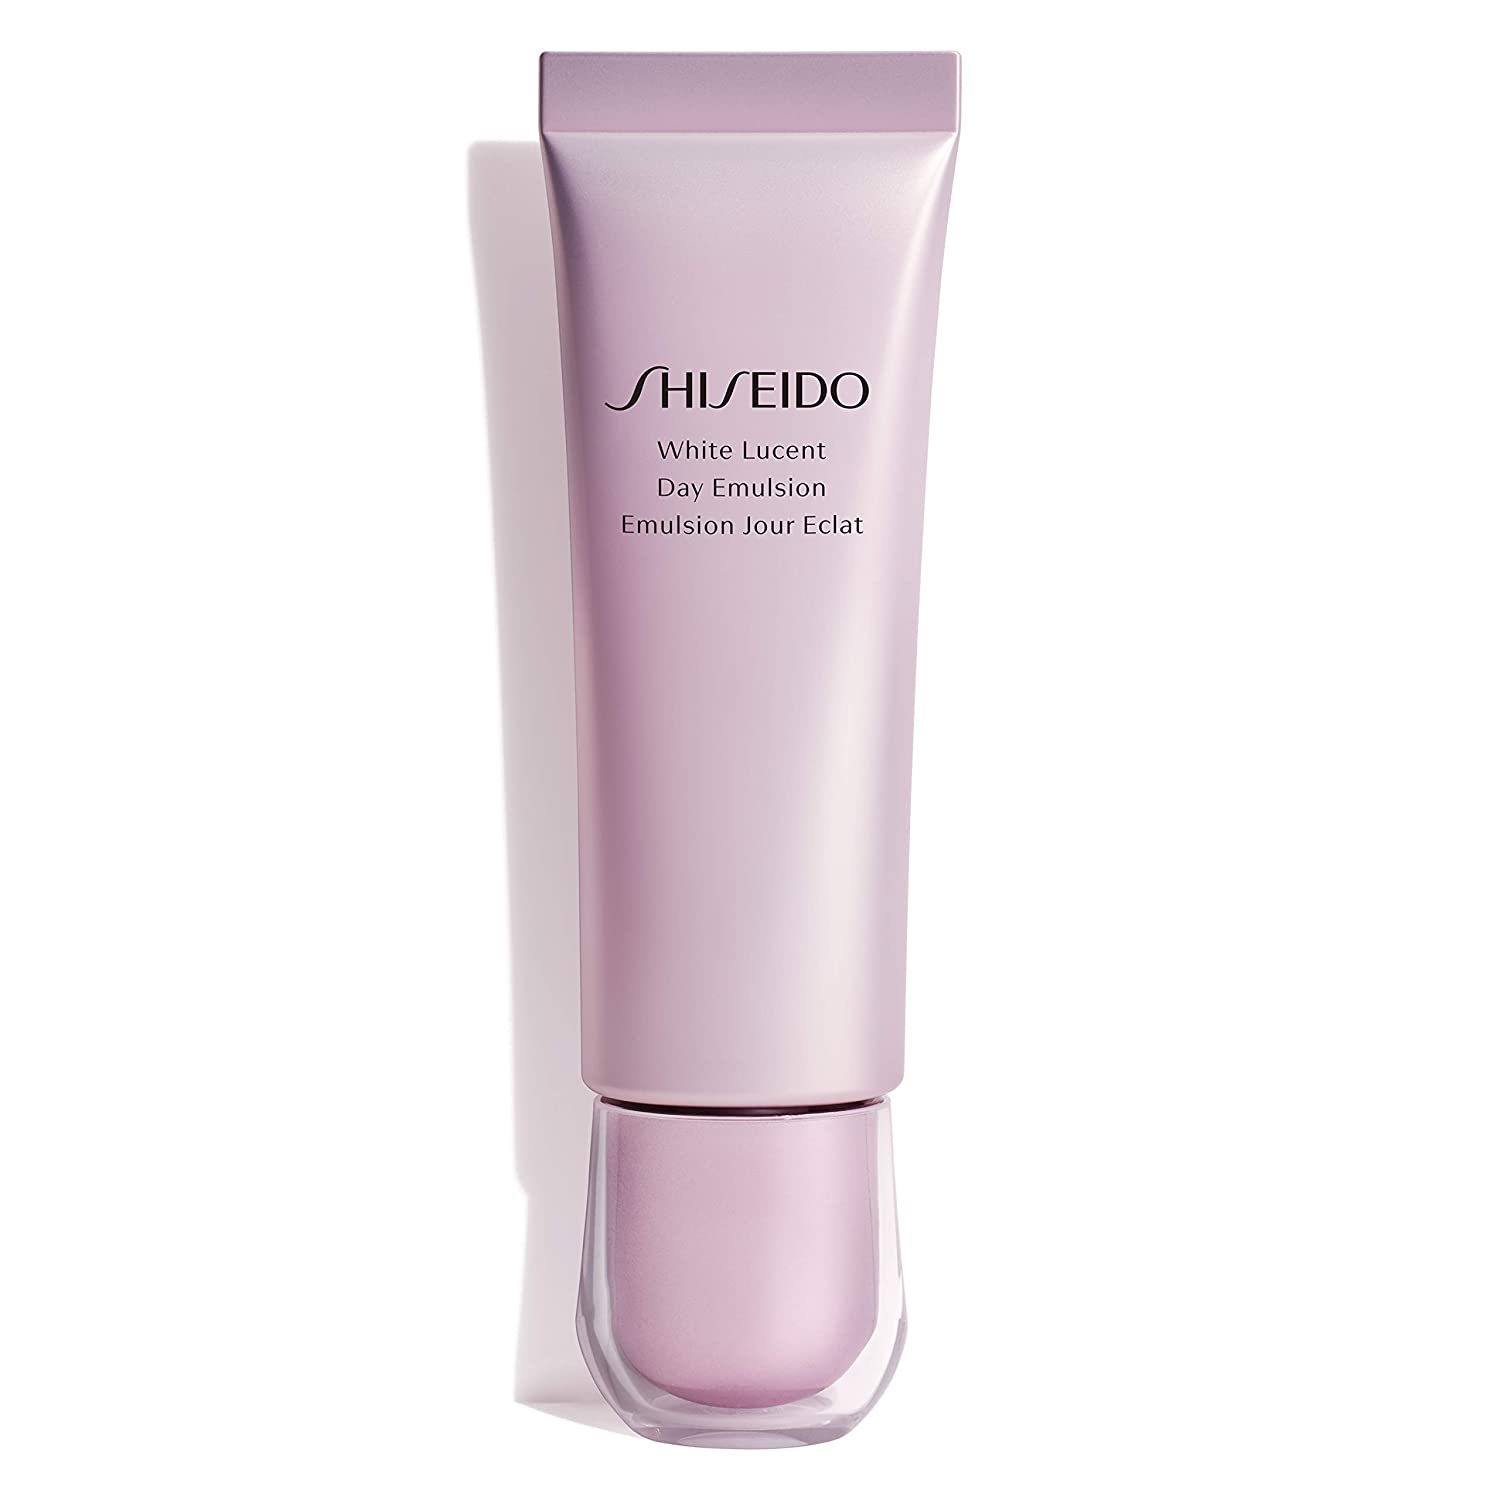 Shiseido White Indefinitely Lucent Special Campaign Day Emulsion Spectrum SPF23 1.7oz Broad